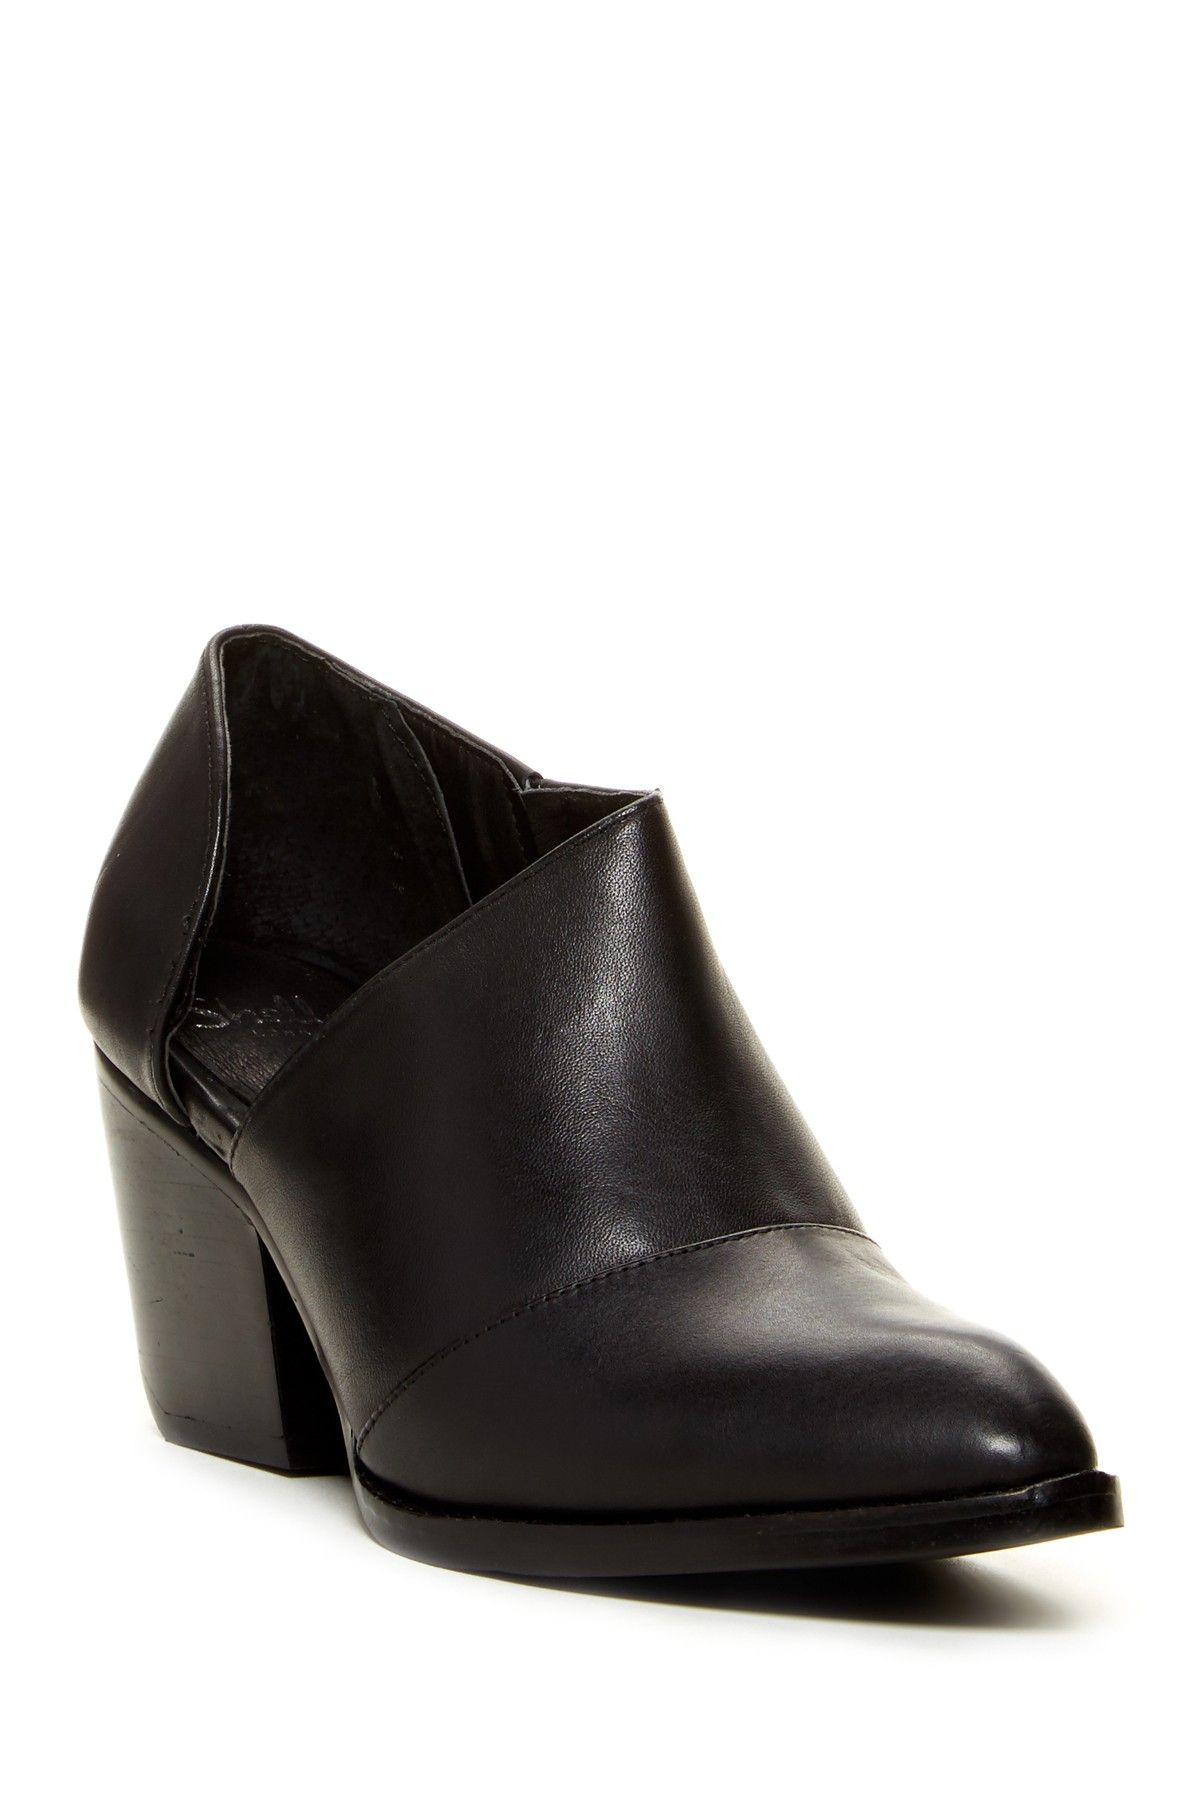 Anime Bootie by Shellys London on nordstromrack